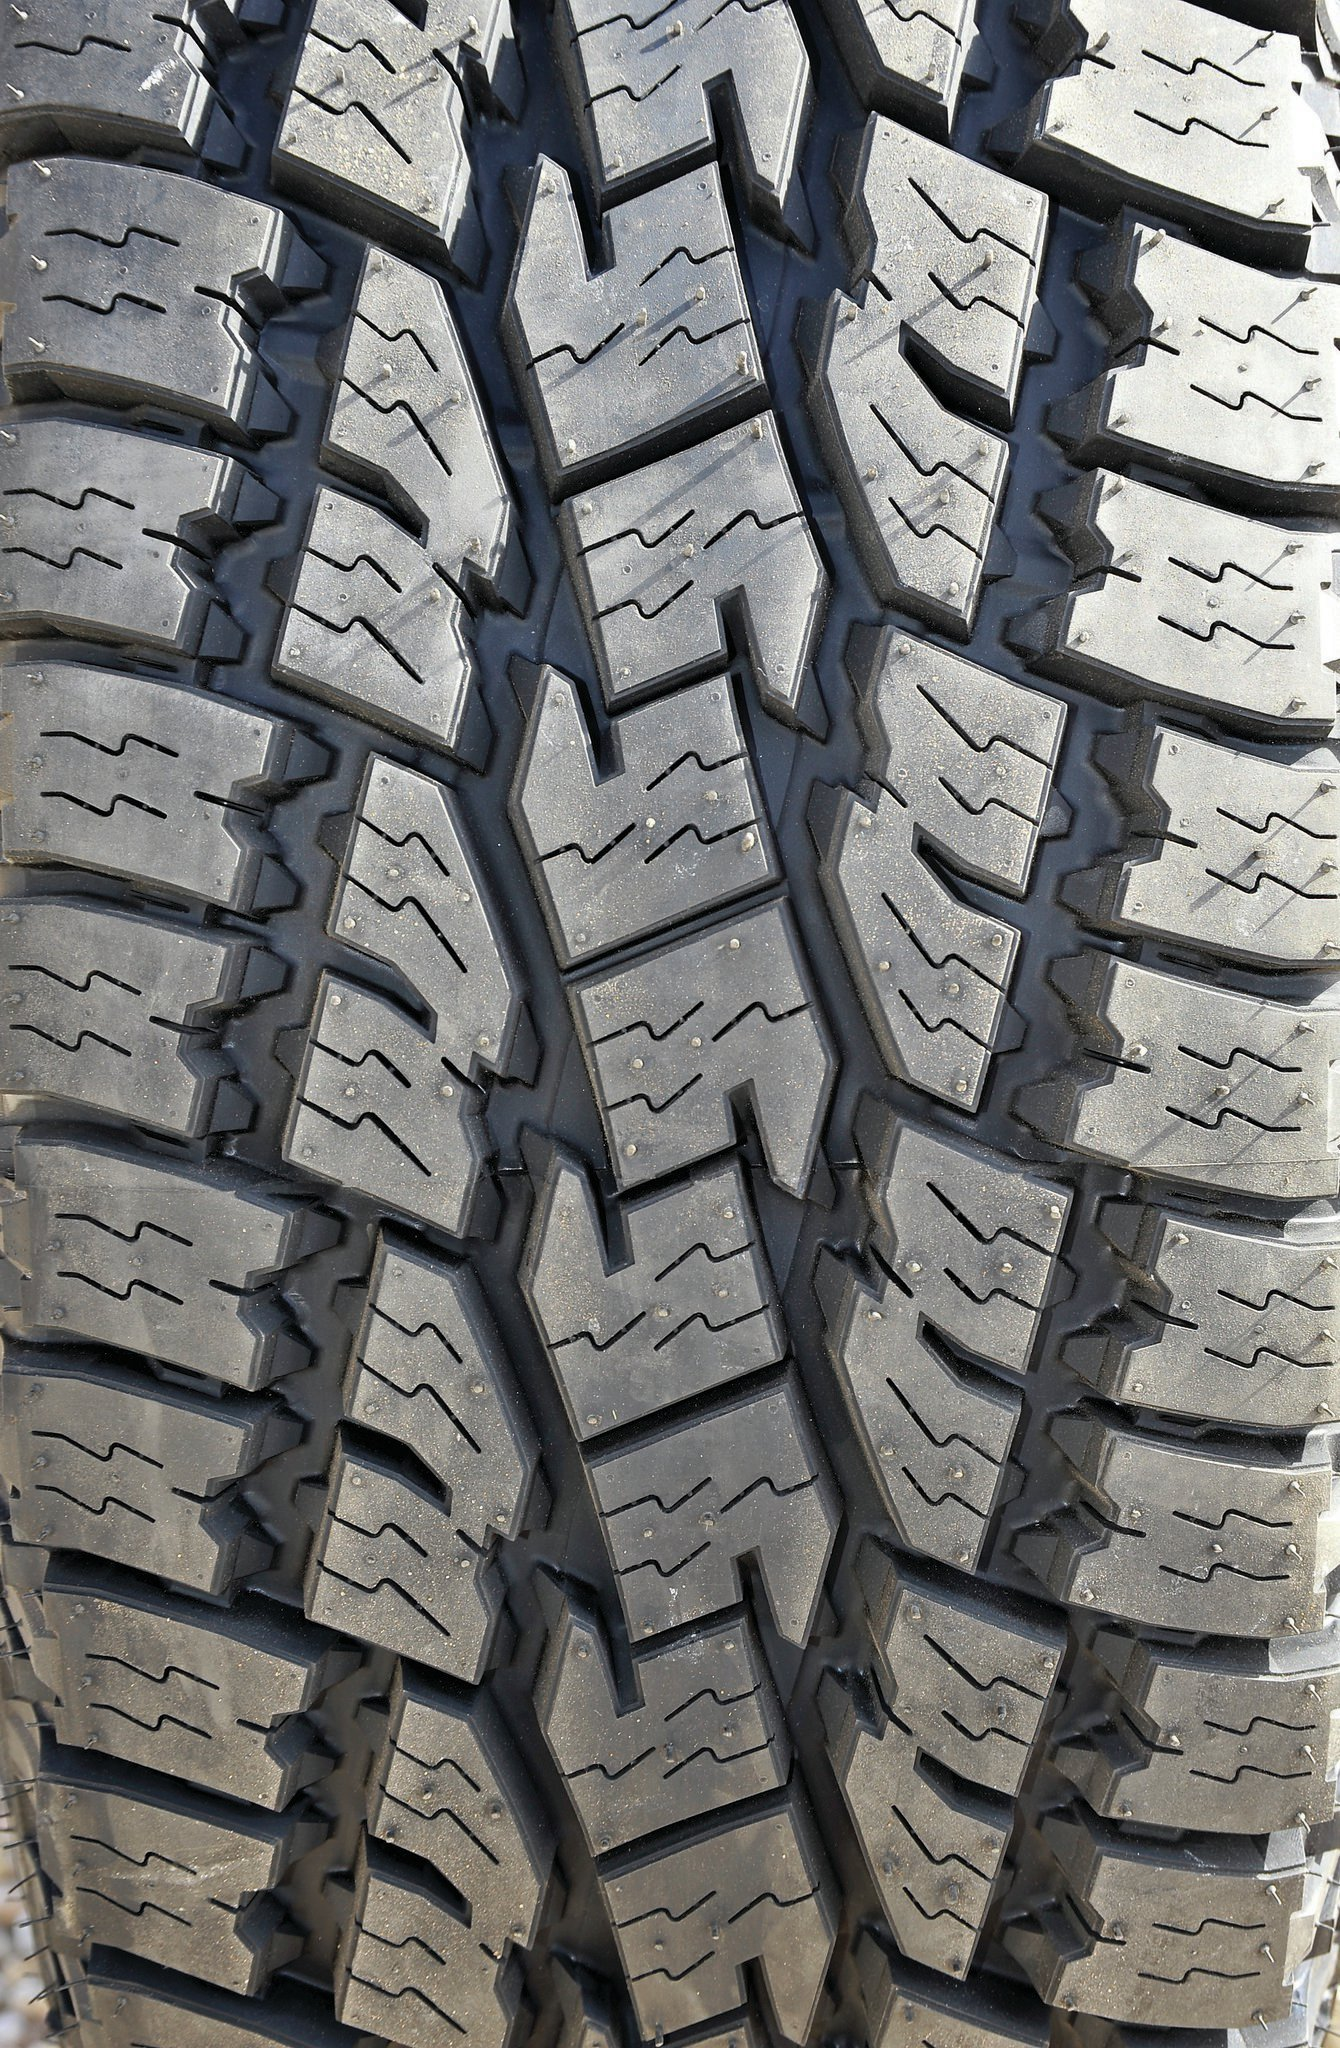 Toyo's Open Country A/T II tread features polygonal blocks and zigzag sipes for excellent traction. The tire is silent and smooth on the road and grips well in the rocks, sand, snow, and dirt. The six-ply tread has two steel, two polyester, and two nylon plies for strength. It's amazing that the Open Country A/T IIs come with a 50,000-mile tread-life warranty.